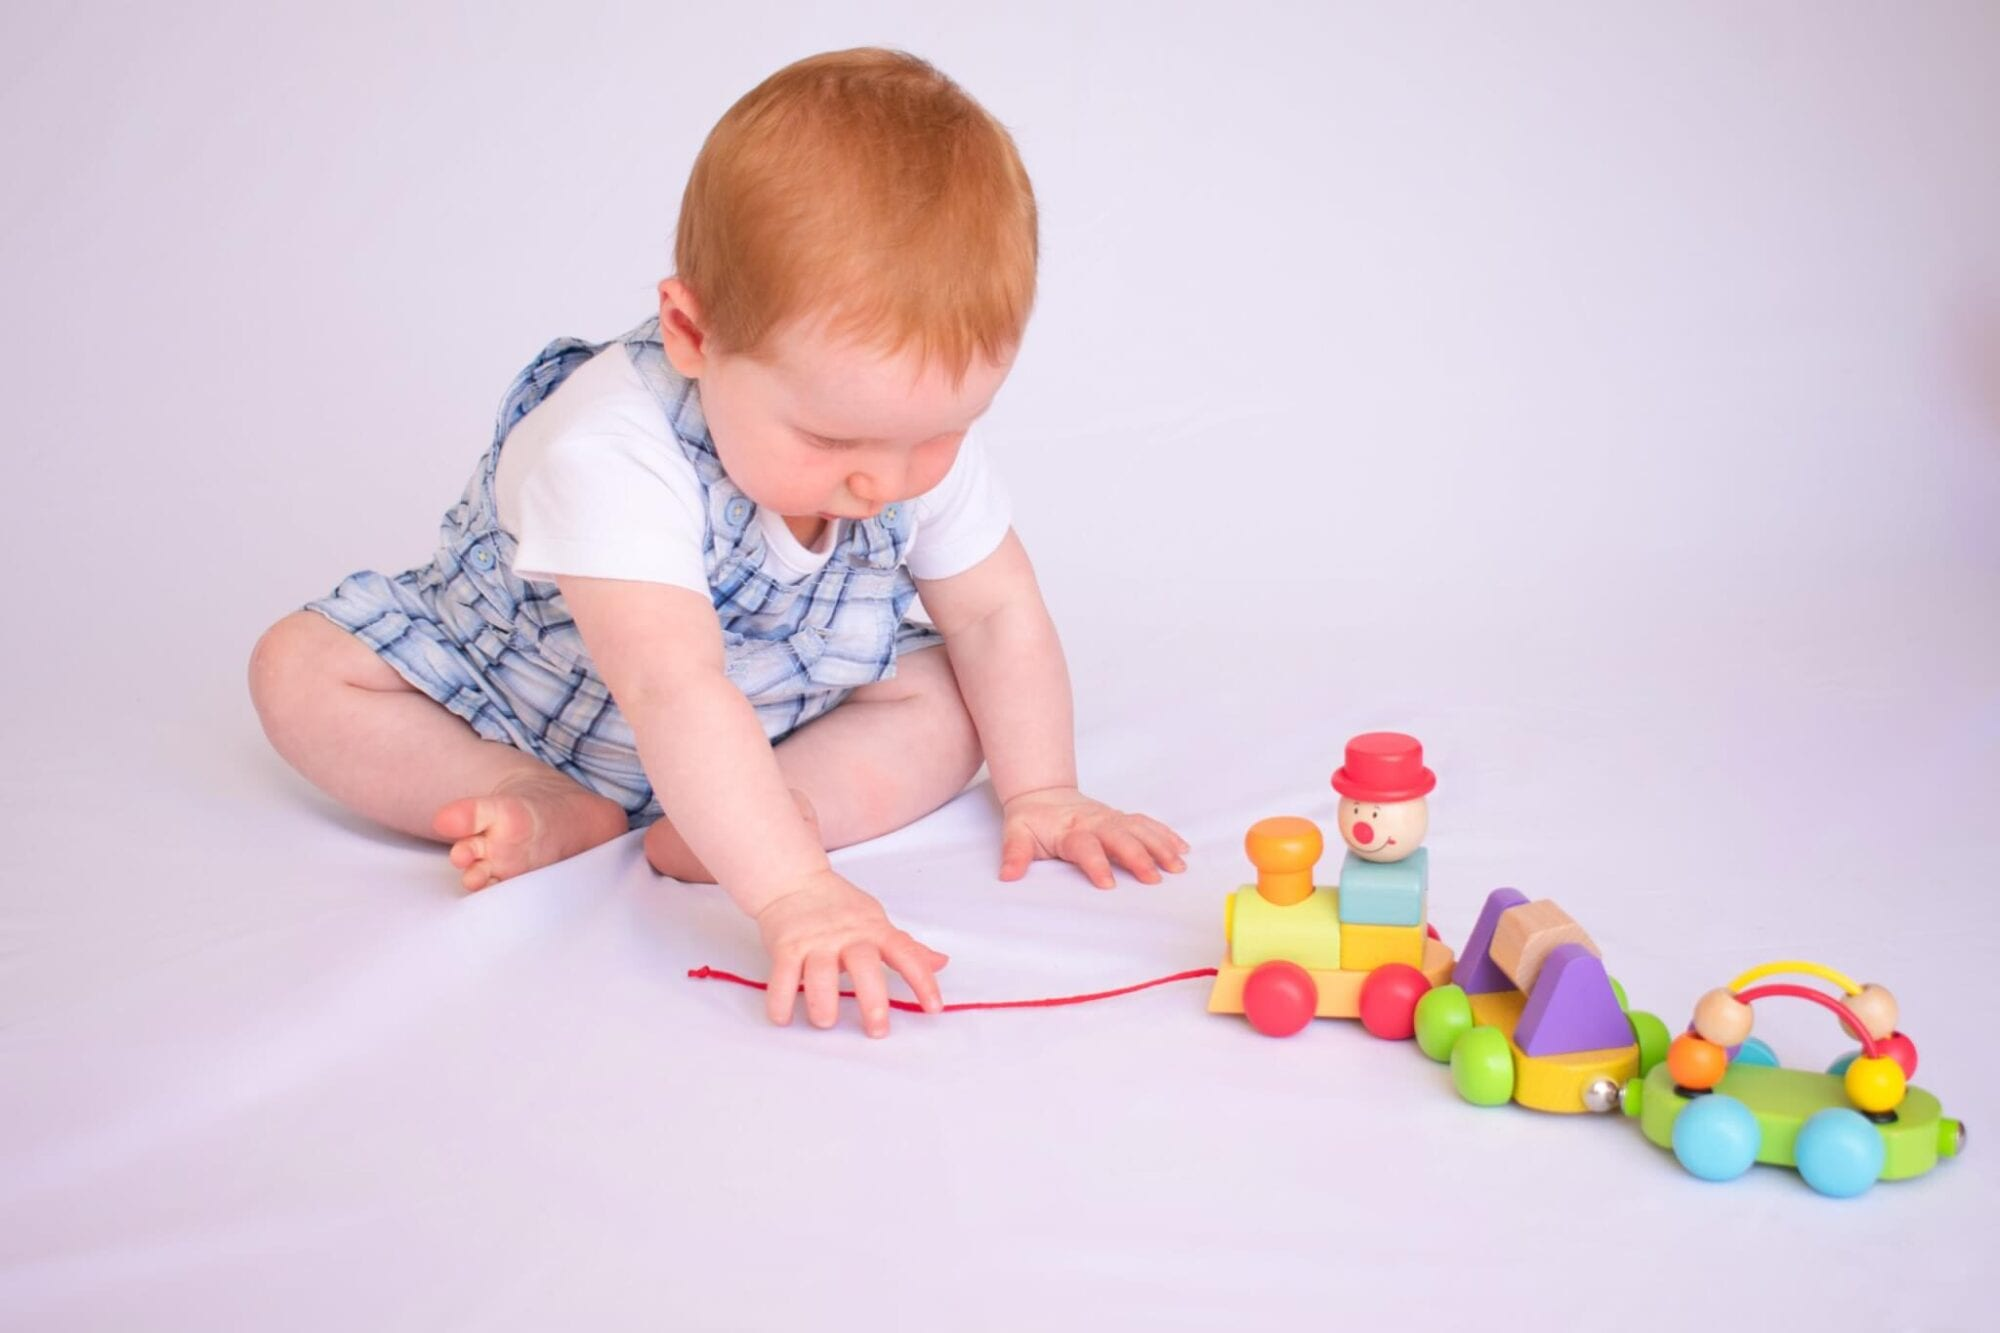 Why Wooden Toys?